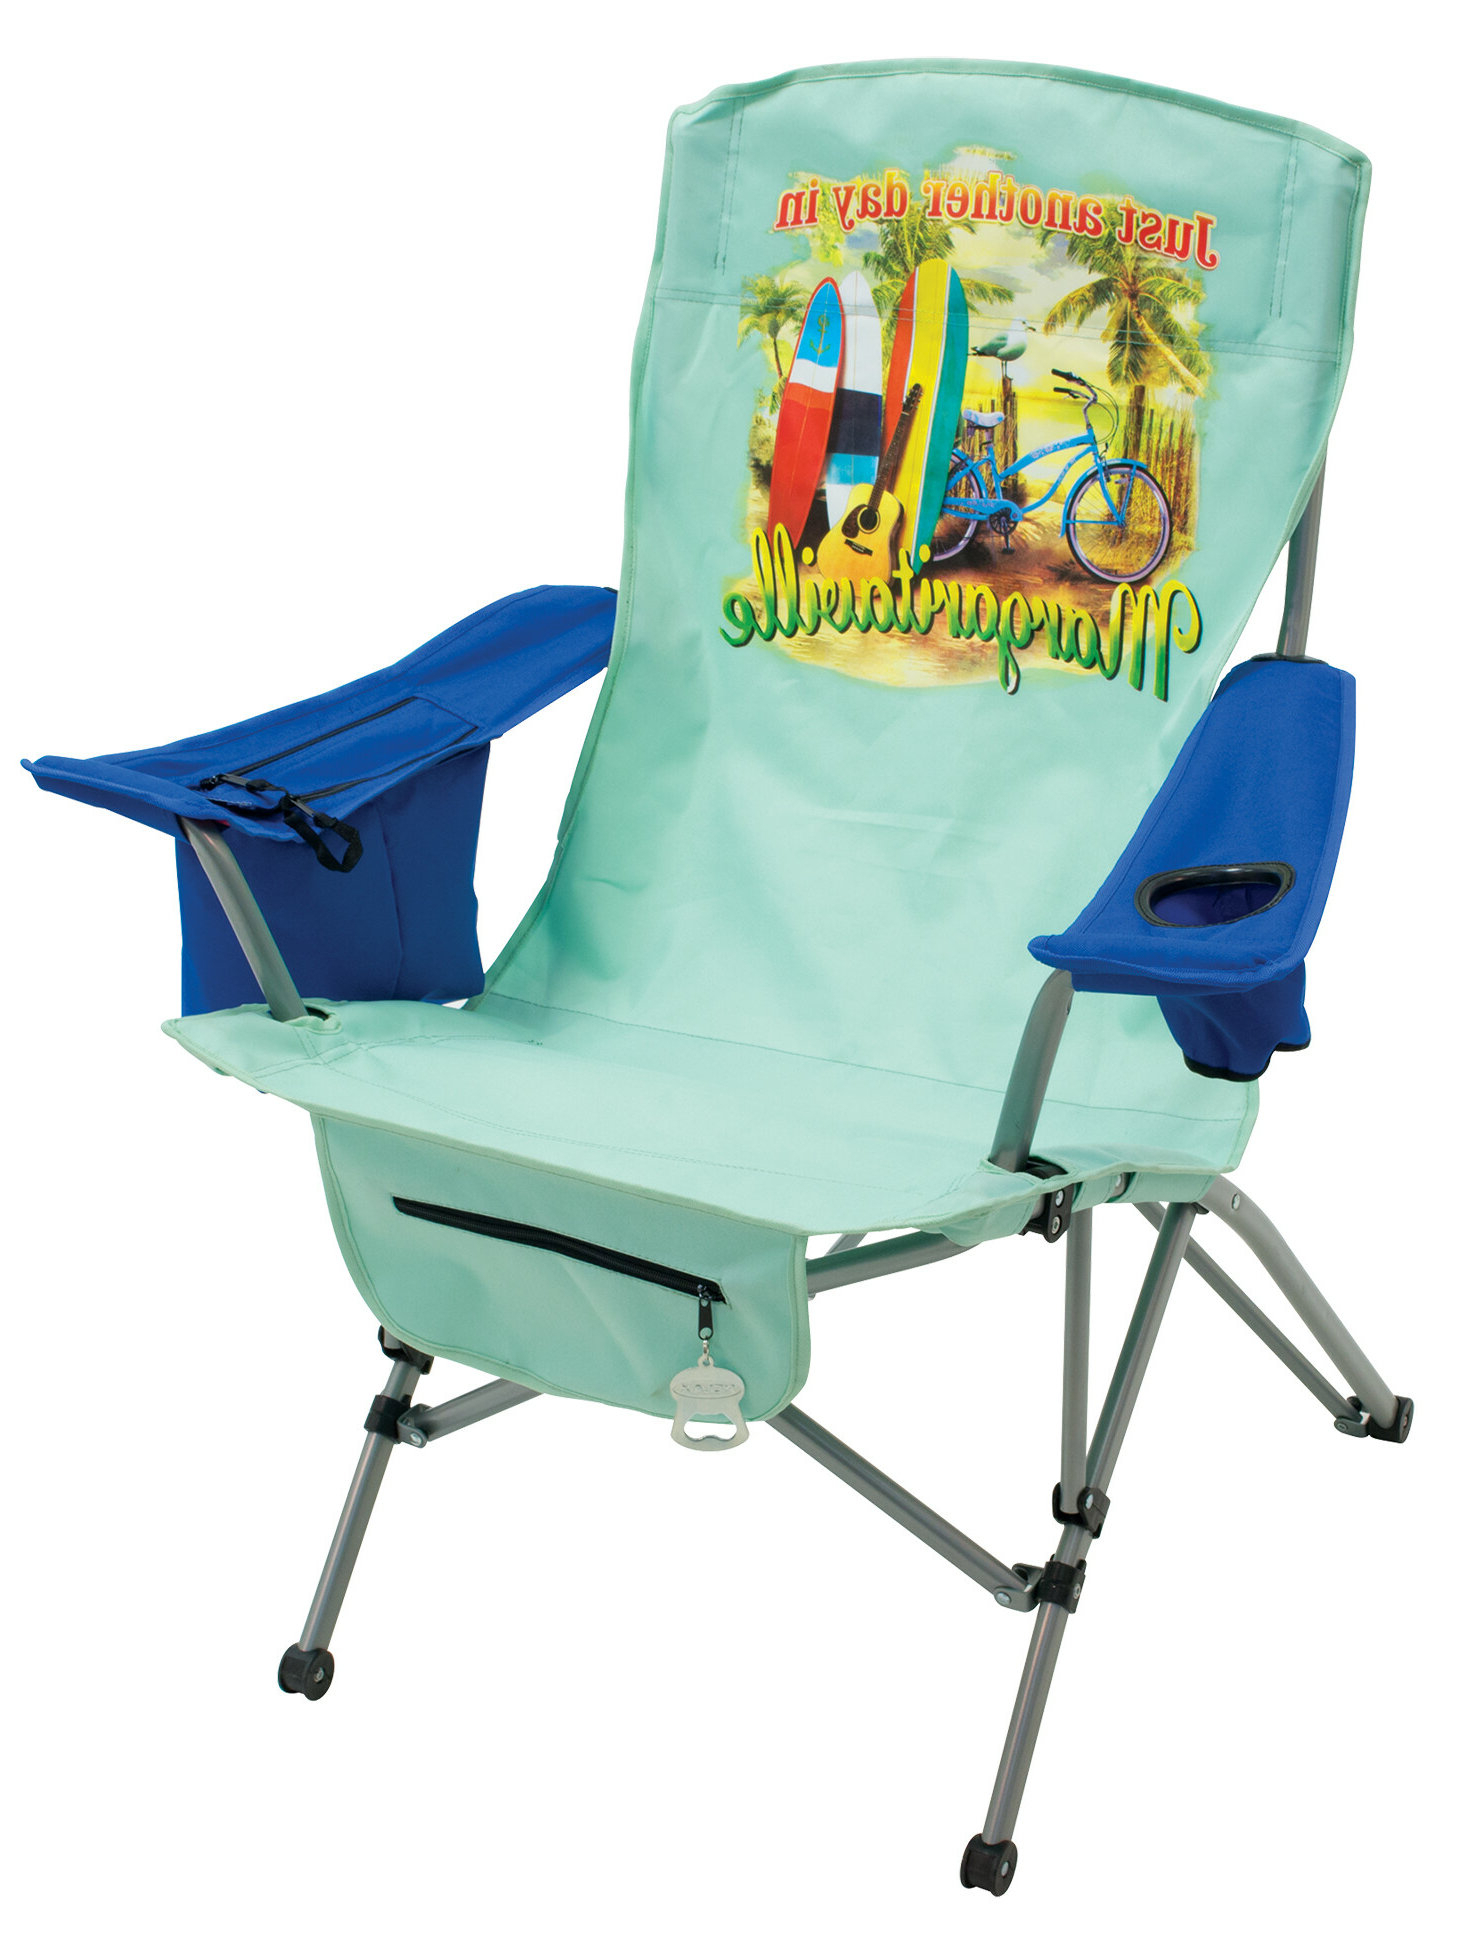 """Recent Margaritaville """"just Another Day In Paradise"""" Tension Reclining Beach Chair With Regard To Margaritaville Green And Blue Striped Beach With Built In Sand Anchor Umbrellas (View 14 of 20)"""